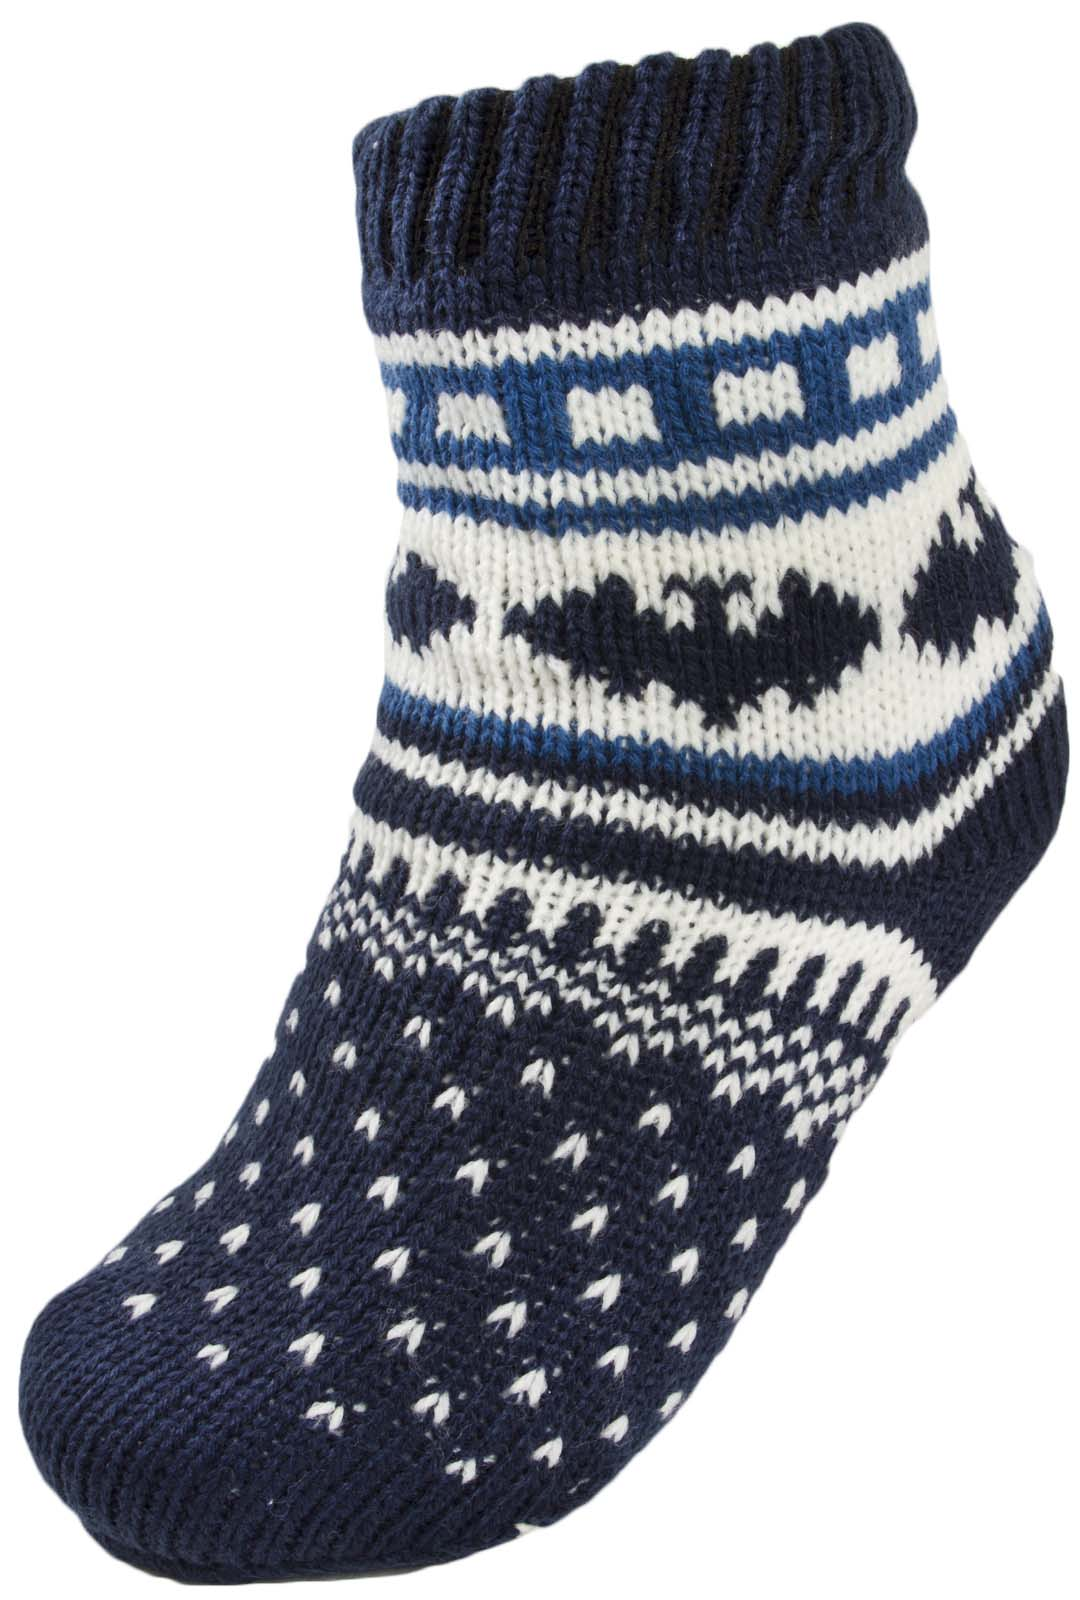 Shop Baby Boy Socks and Booties from Carter's, the leading brand of children's clothing, gifts and accessories. Perfect fall socks! Nice and warm and comfortable for my little guy! Emily. 1 week ago. Awesome Socks! This reviewer rated product 5 out of 5 stars. Emily. 1 week ago.